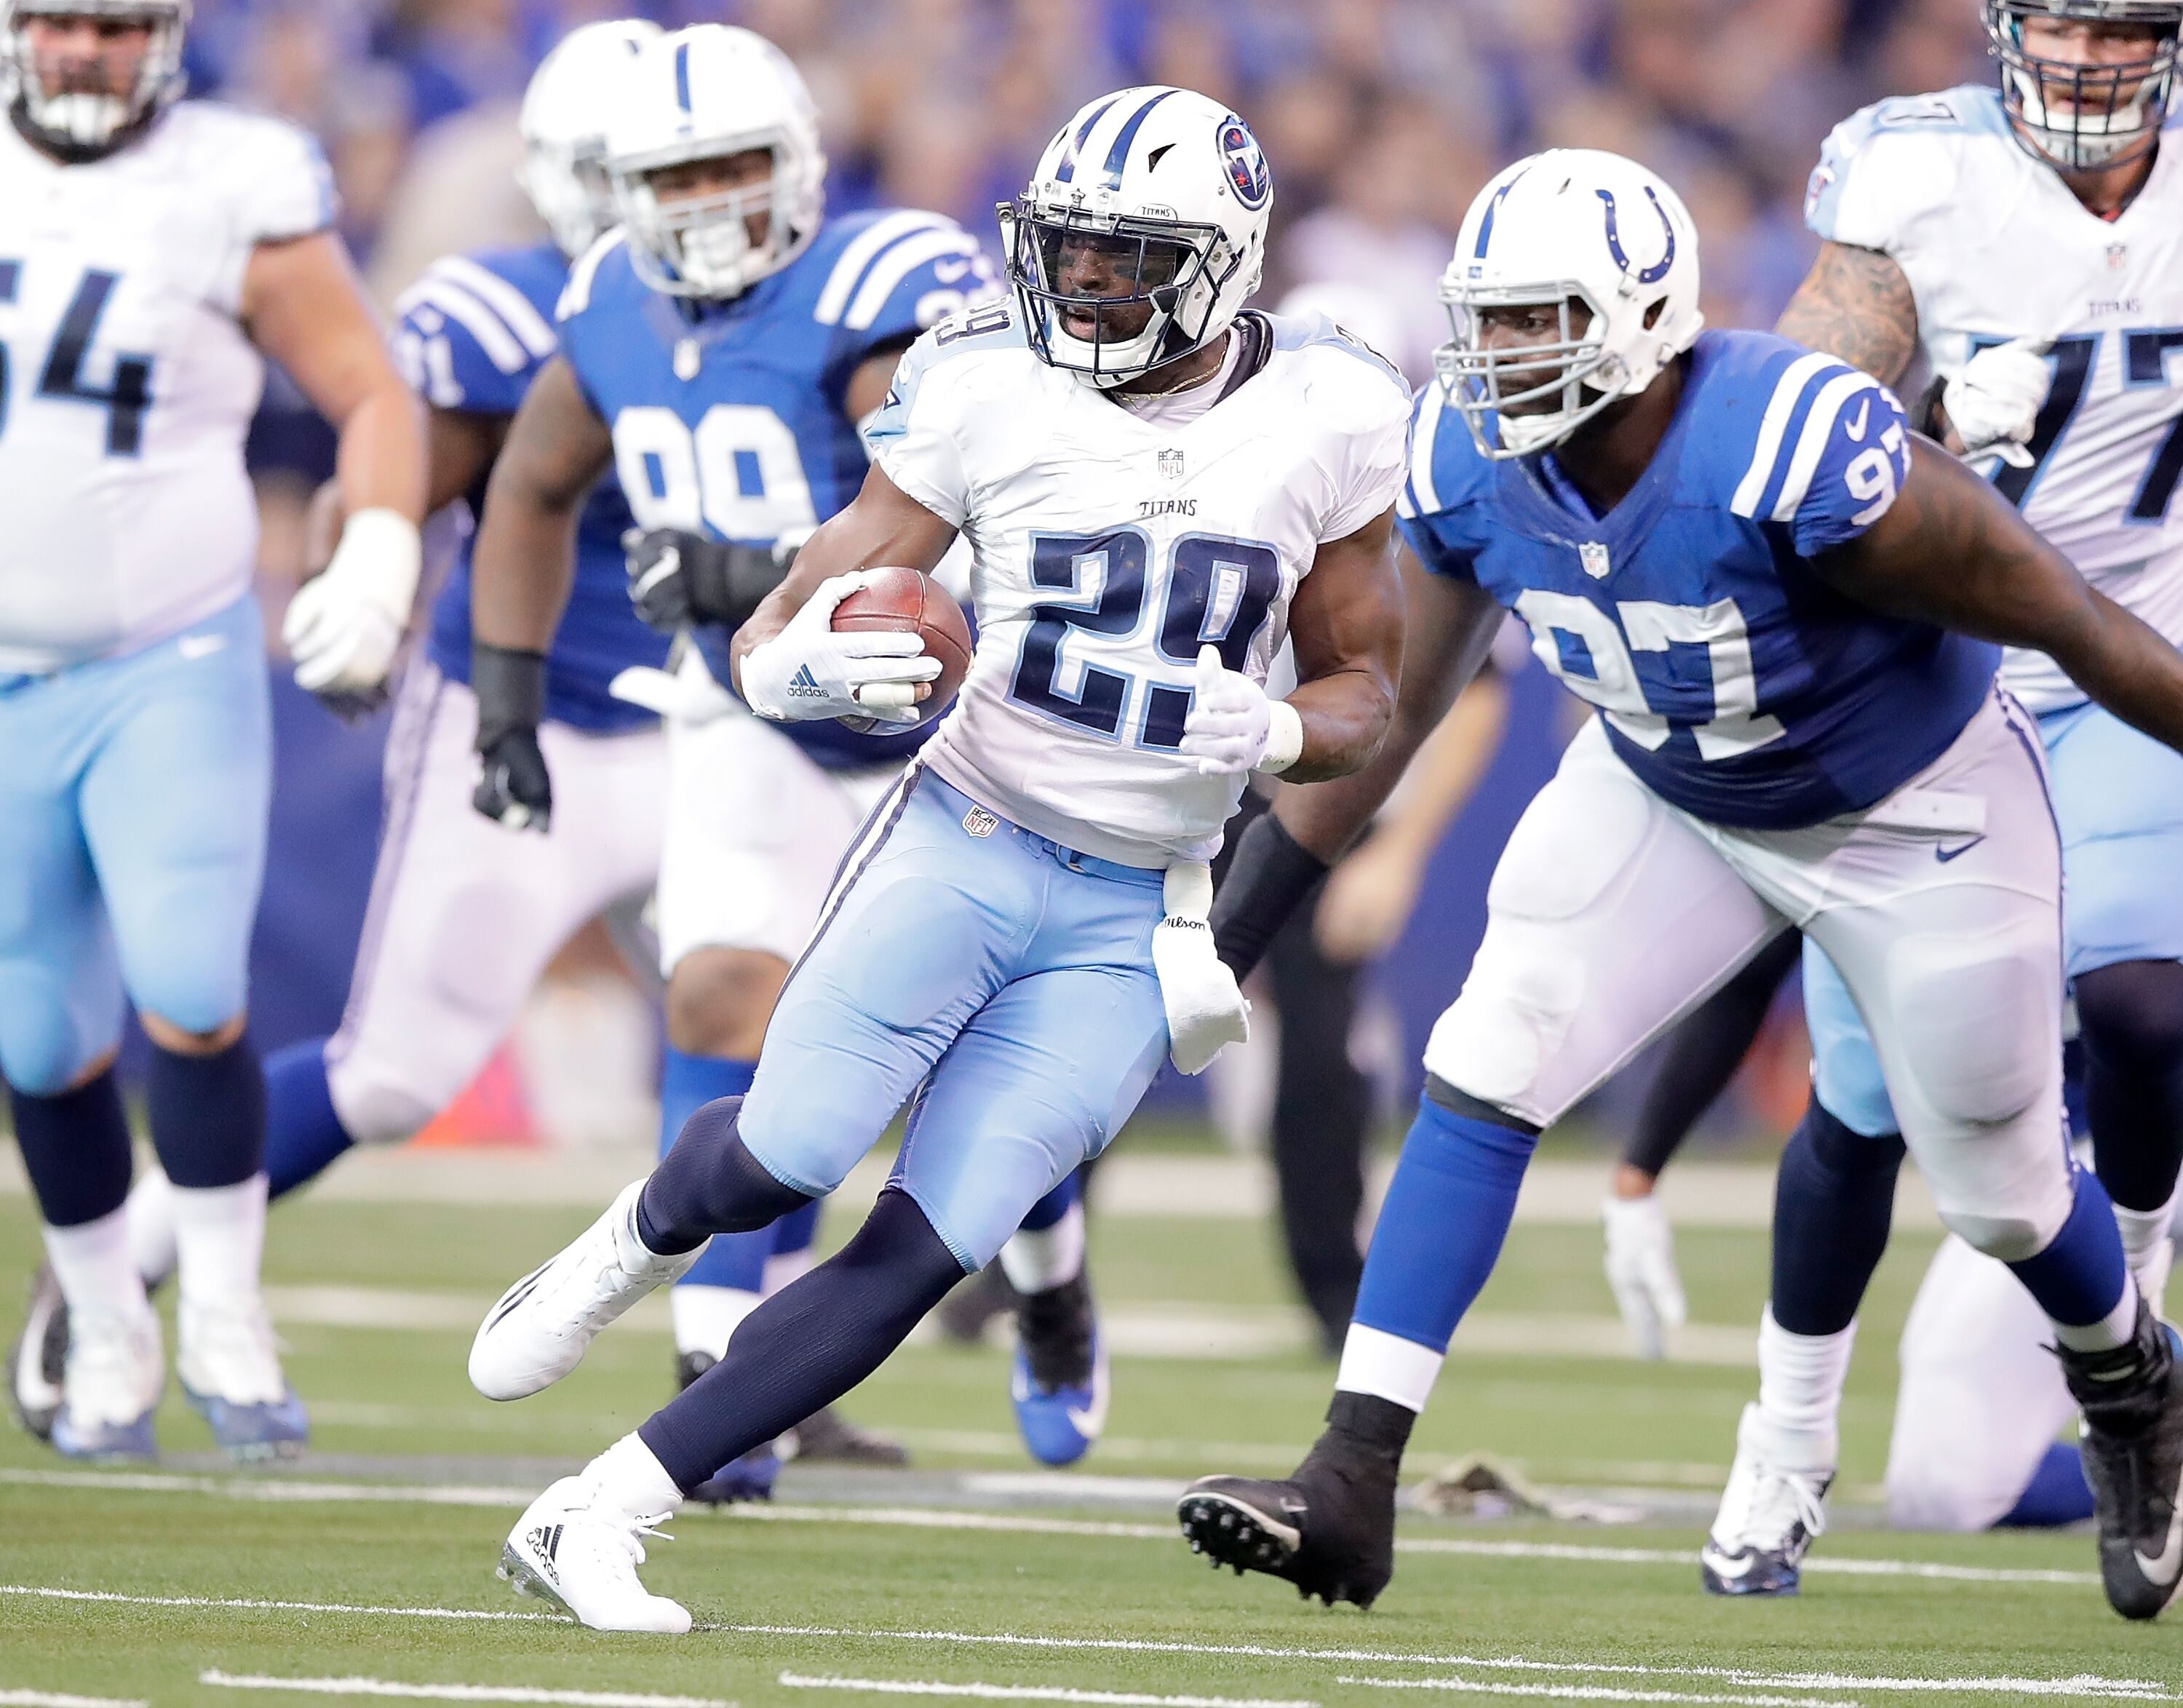 624663990-tennessee-titans-v-indianapolis-colts.jpg